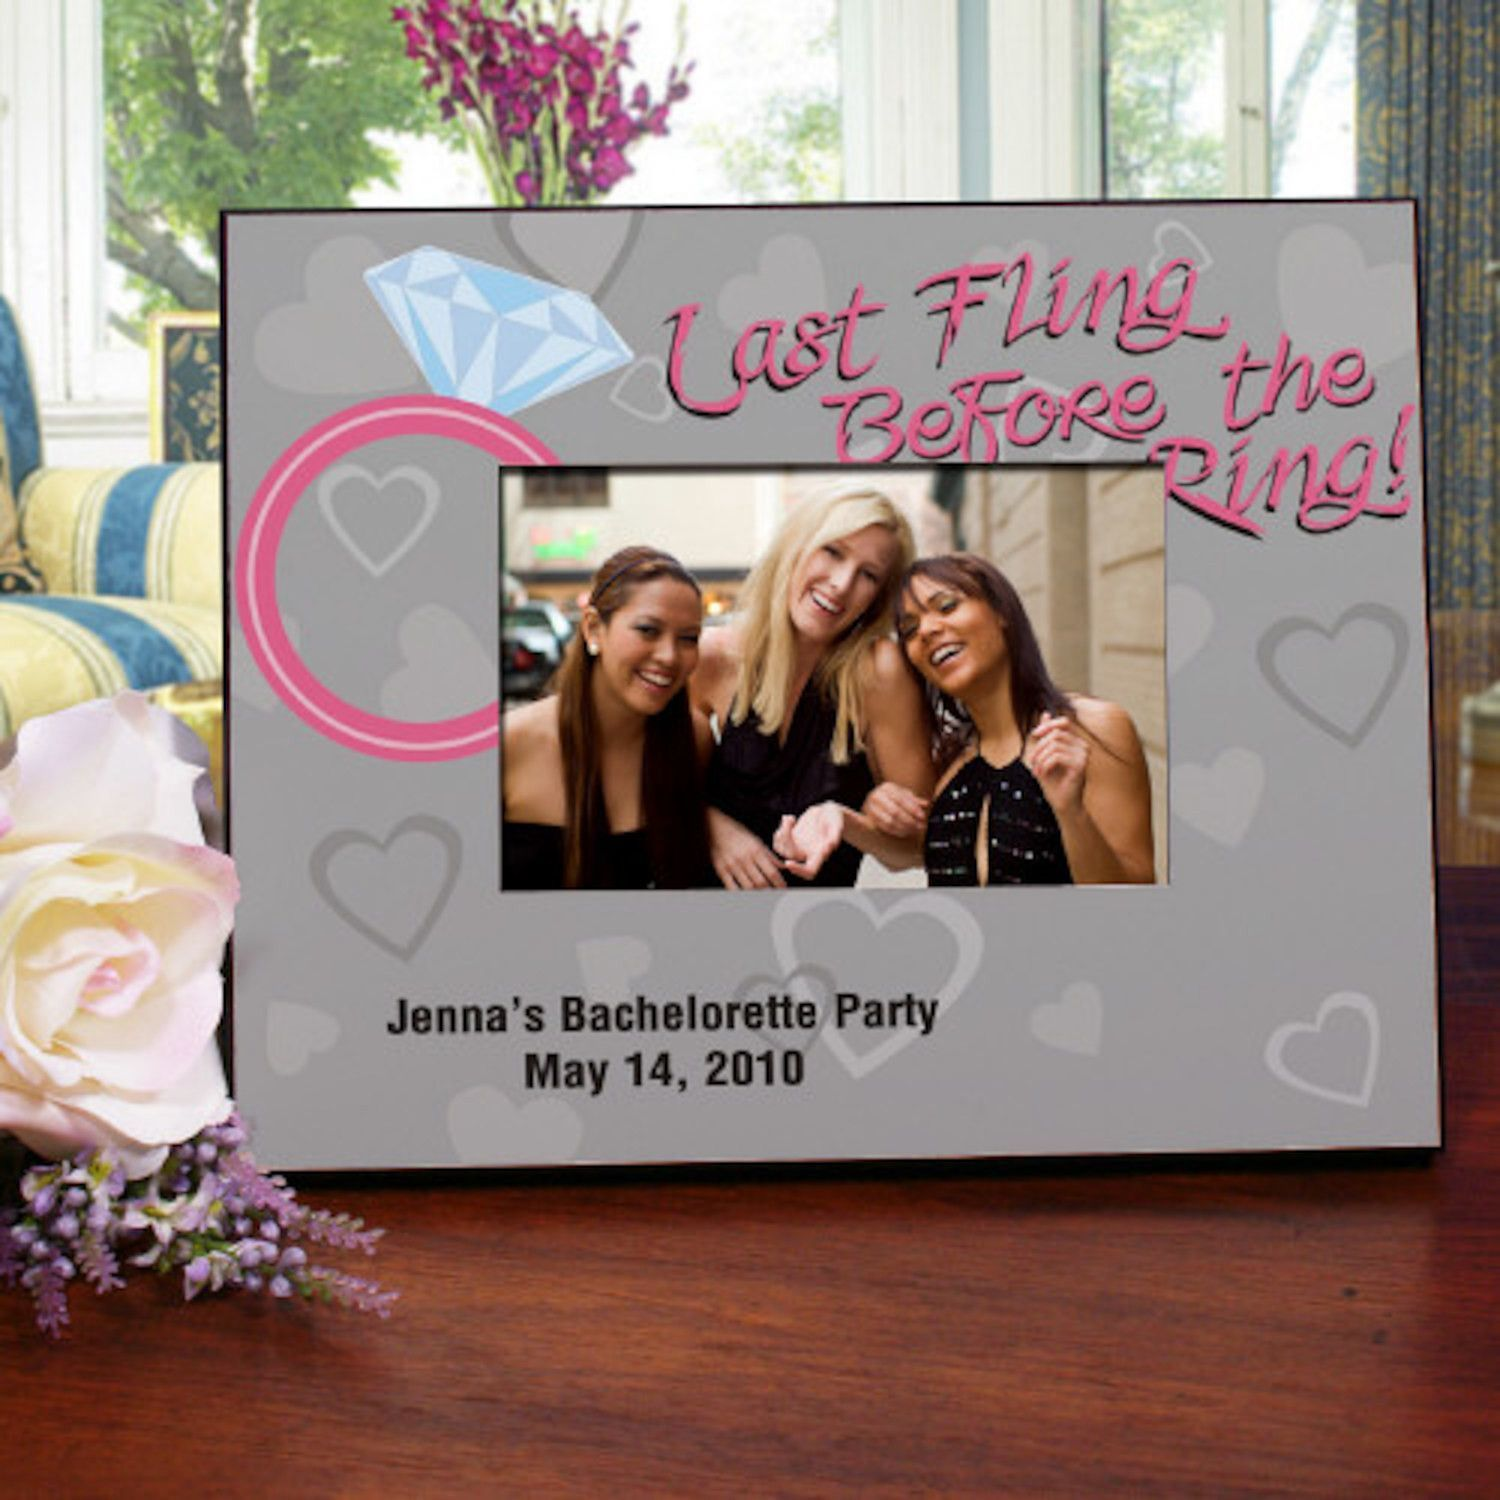 Personalized Last Fling Printed Picture Frame | Products | Pinterest ...